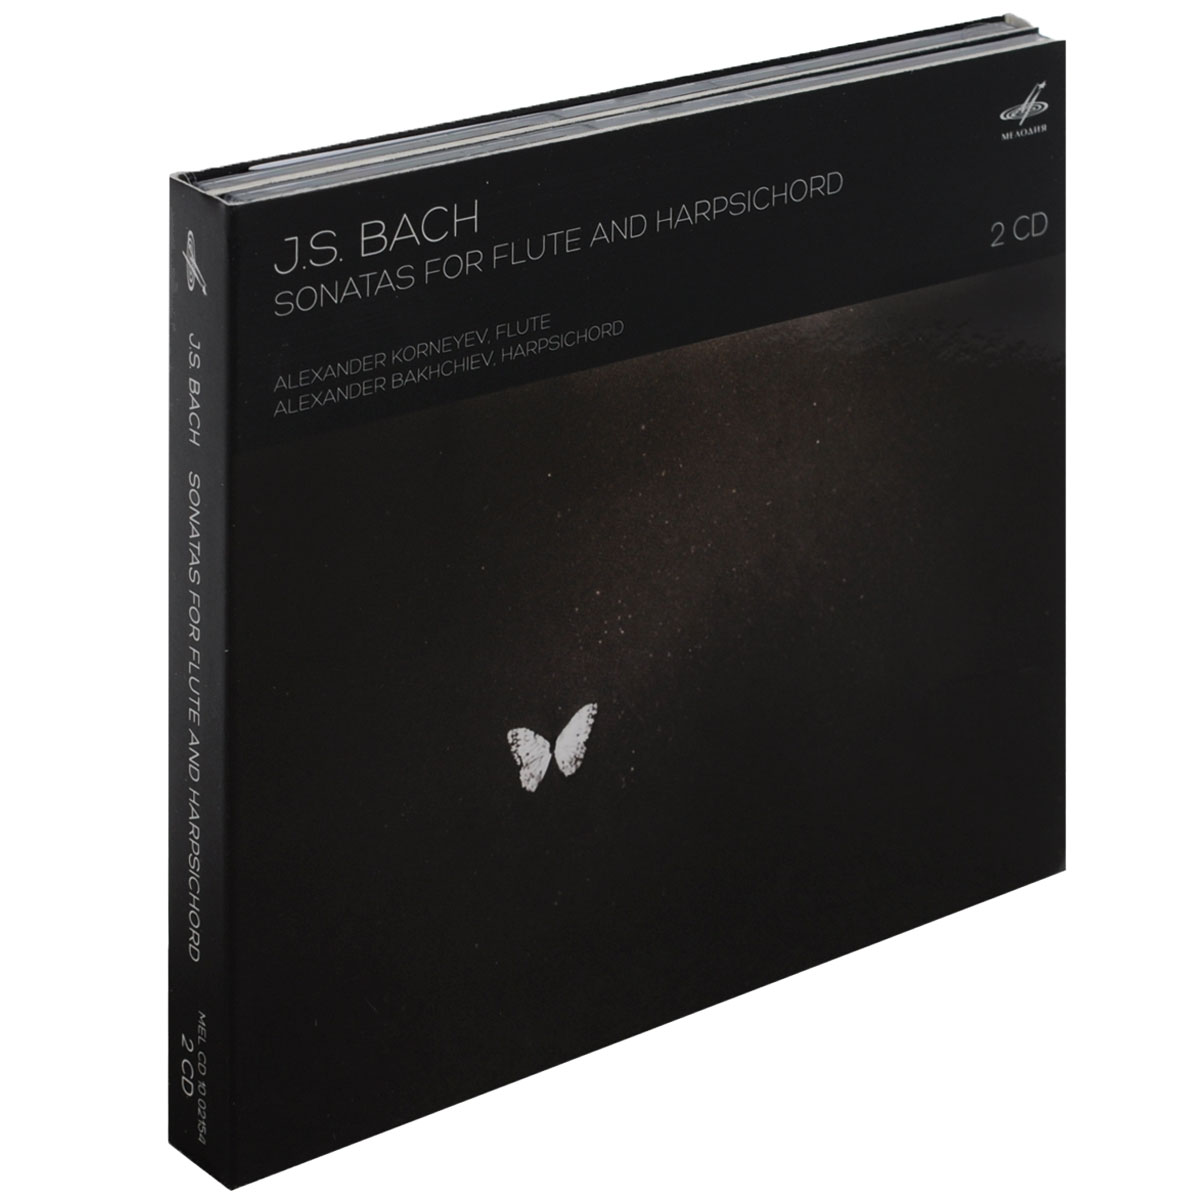 J. S. Bach. Sonatas For Flute And Harpsichord (2 CD) sonatas